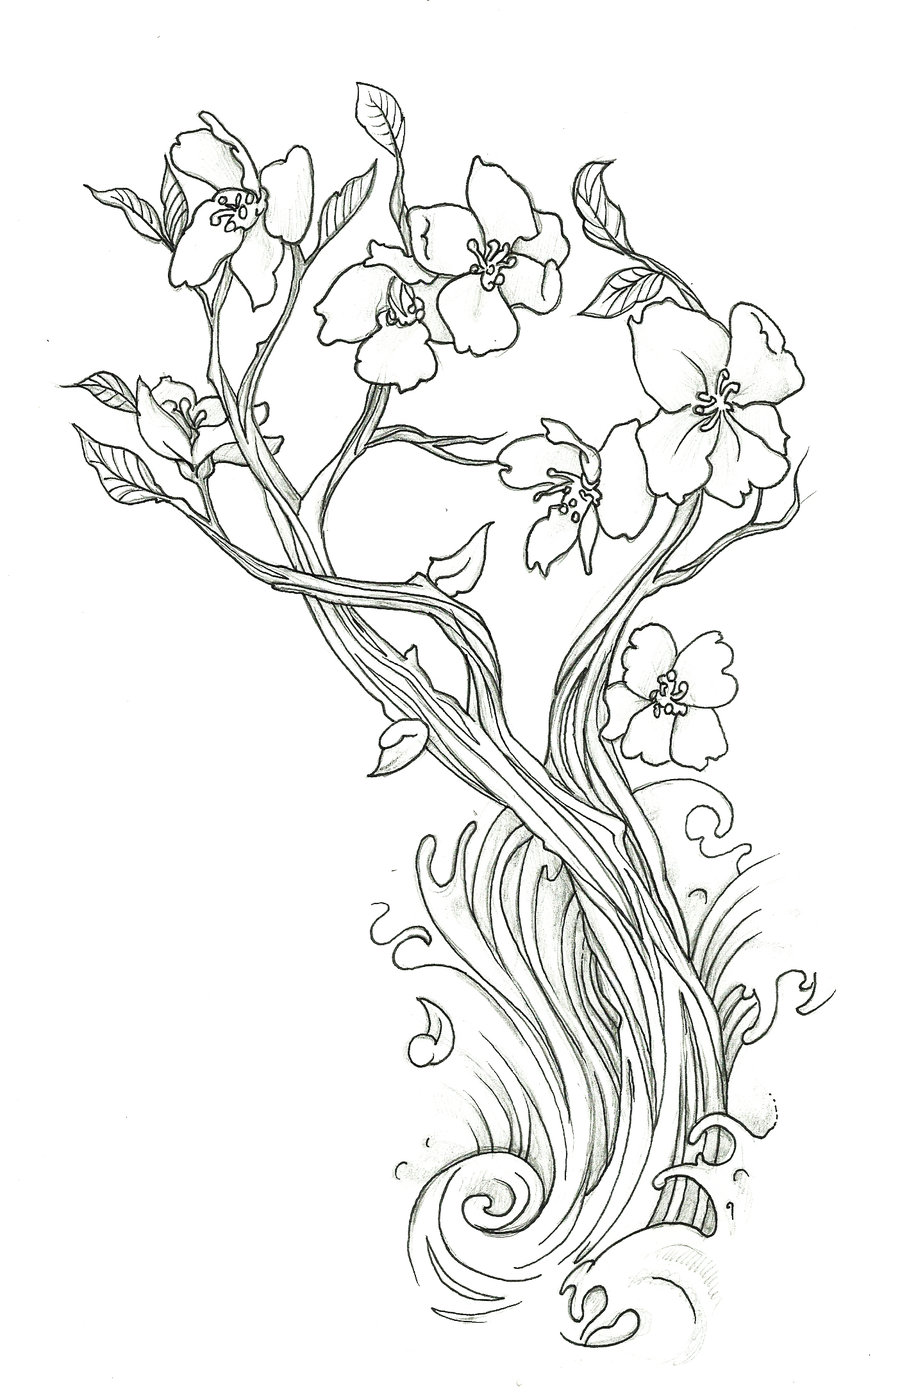 Drawn sakura blossom line drawing By Cherry drawings endofnonentity and